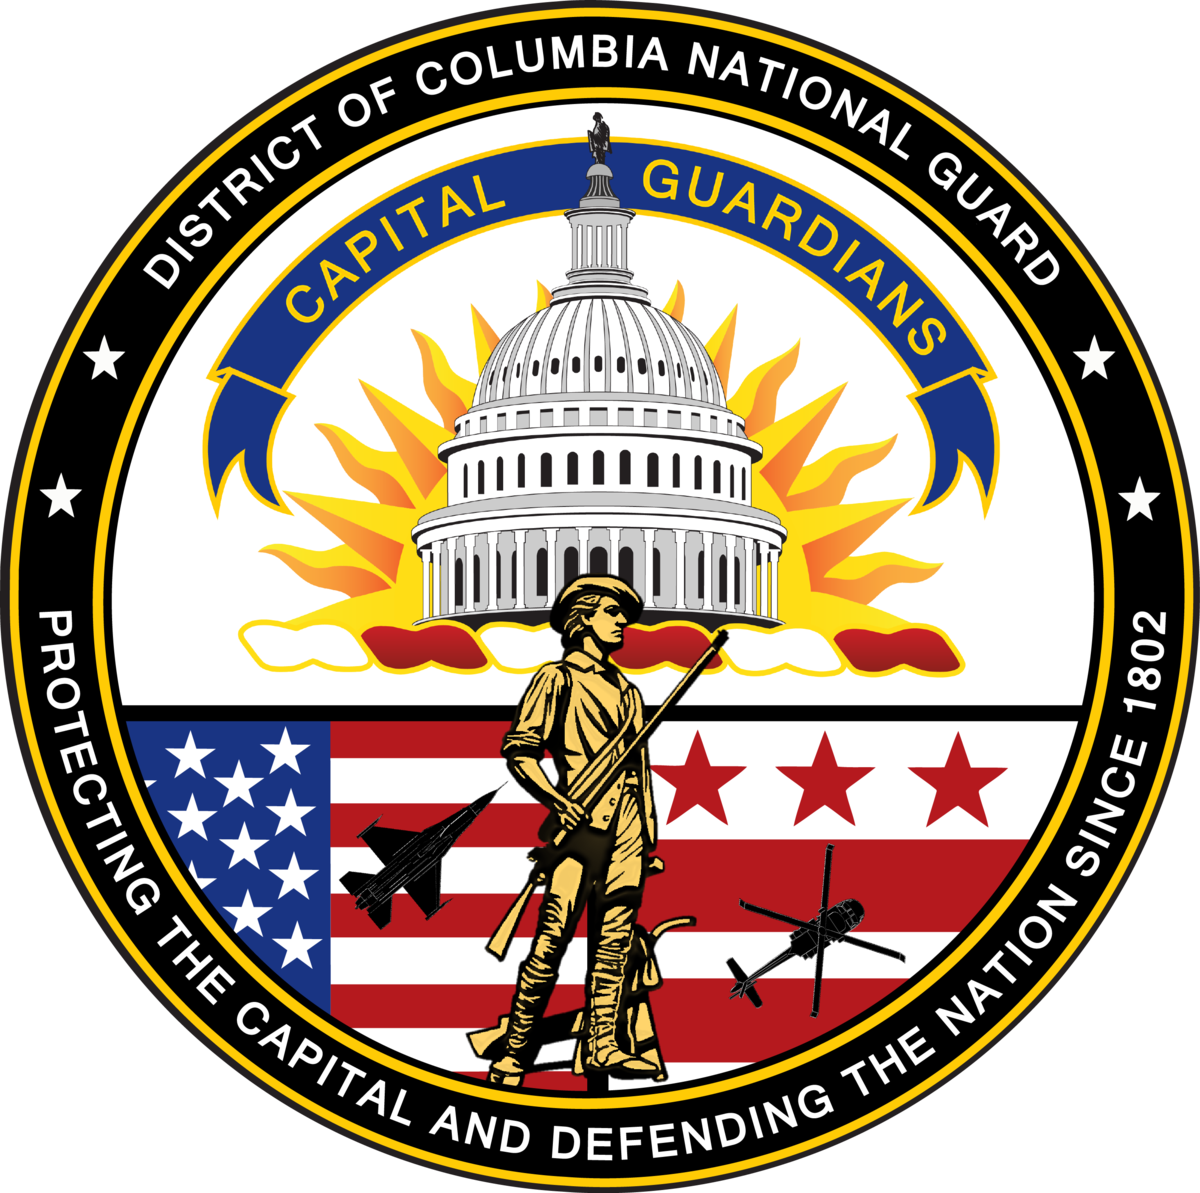 Pilot clipart security guard logo. District of columbia national